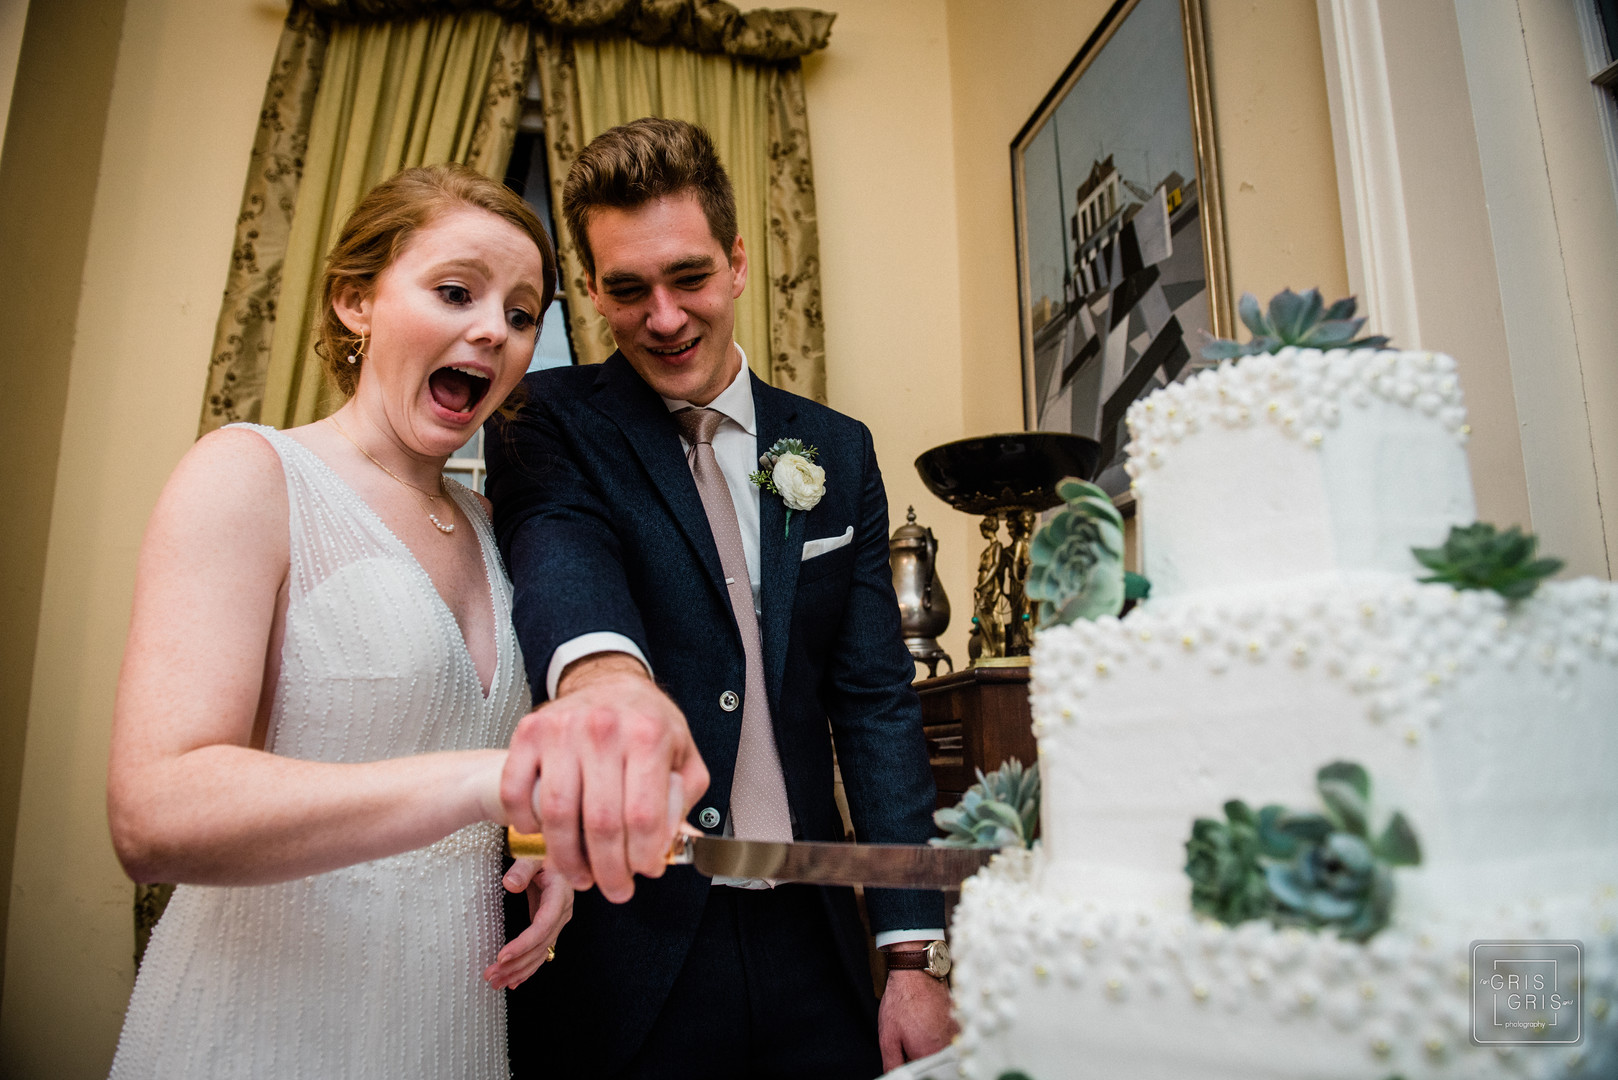 bride shows emotion when cutting cake durring their reception at the benachi house